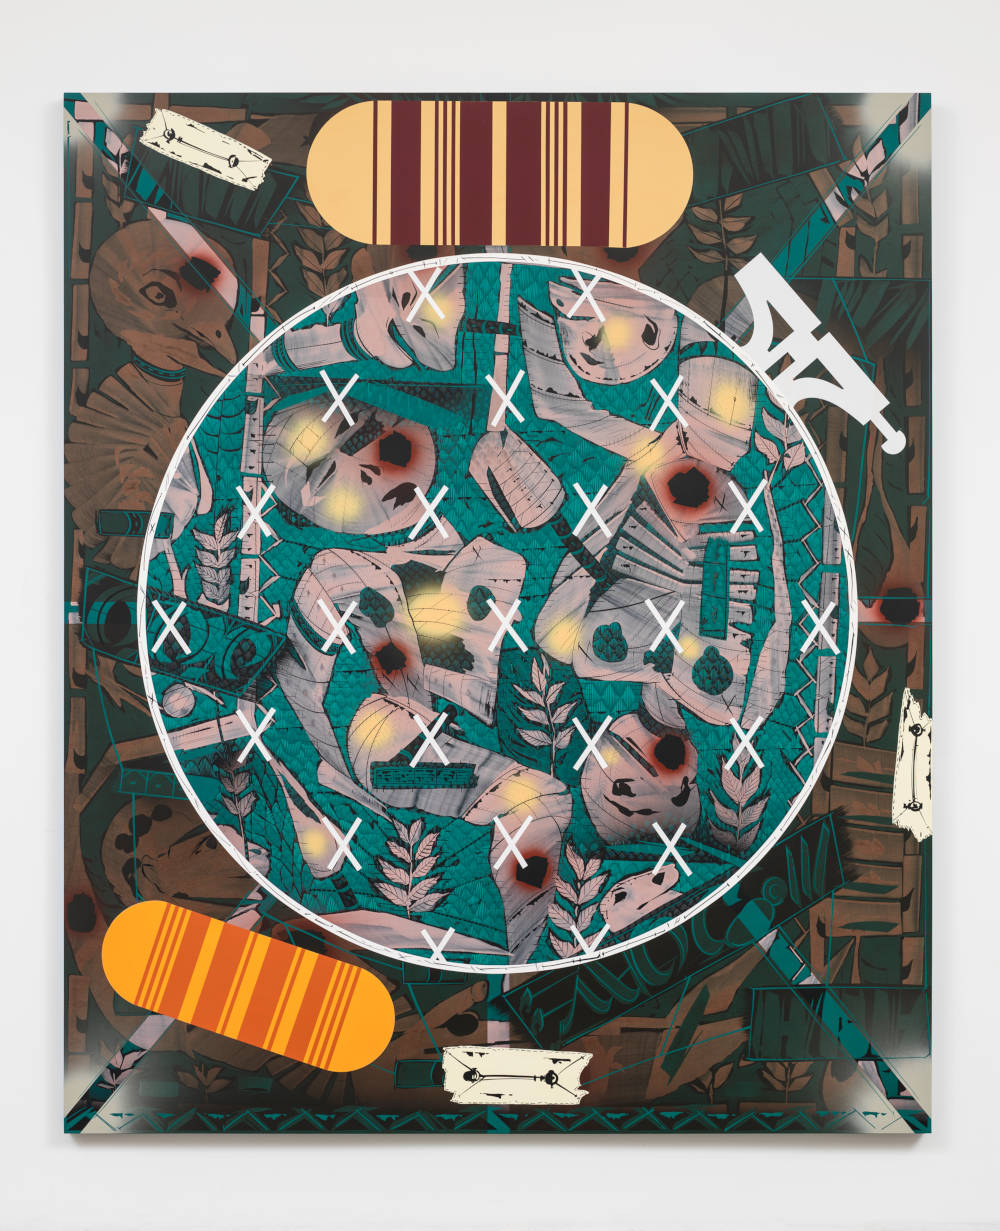 Lari Pittman, Needlepoint Sampler with Patches (#2) Depicting Daily Life of a Late Western Impaerium, 2013. Cel-vinyl and spray enamel on canvas 108 x 90 x 2 inches 274.3 x 228.6 x 5.1 cm © Lari Pittman. Courtesy Regen Projects, Los Angeles and Lehmann Maupin, New York, Hong Kong, and Seoul